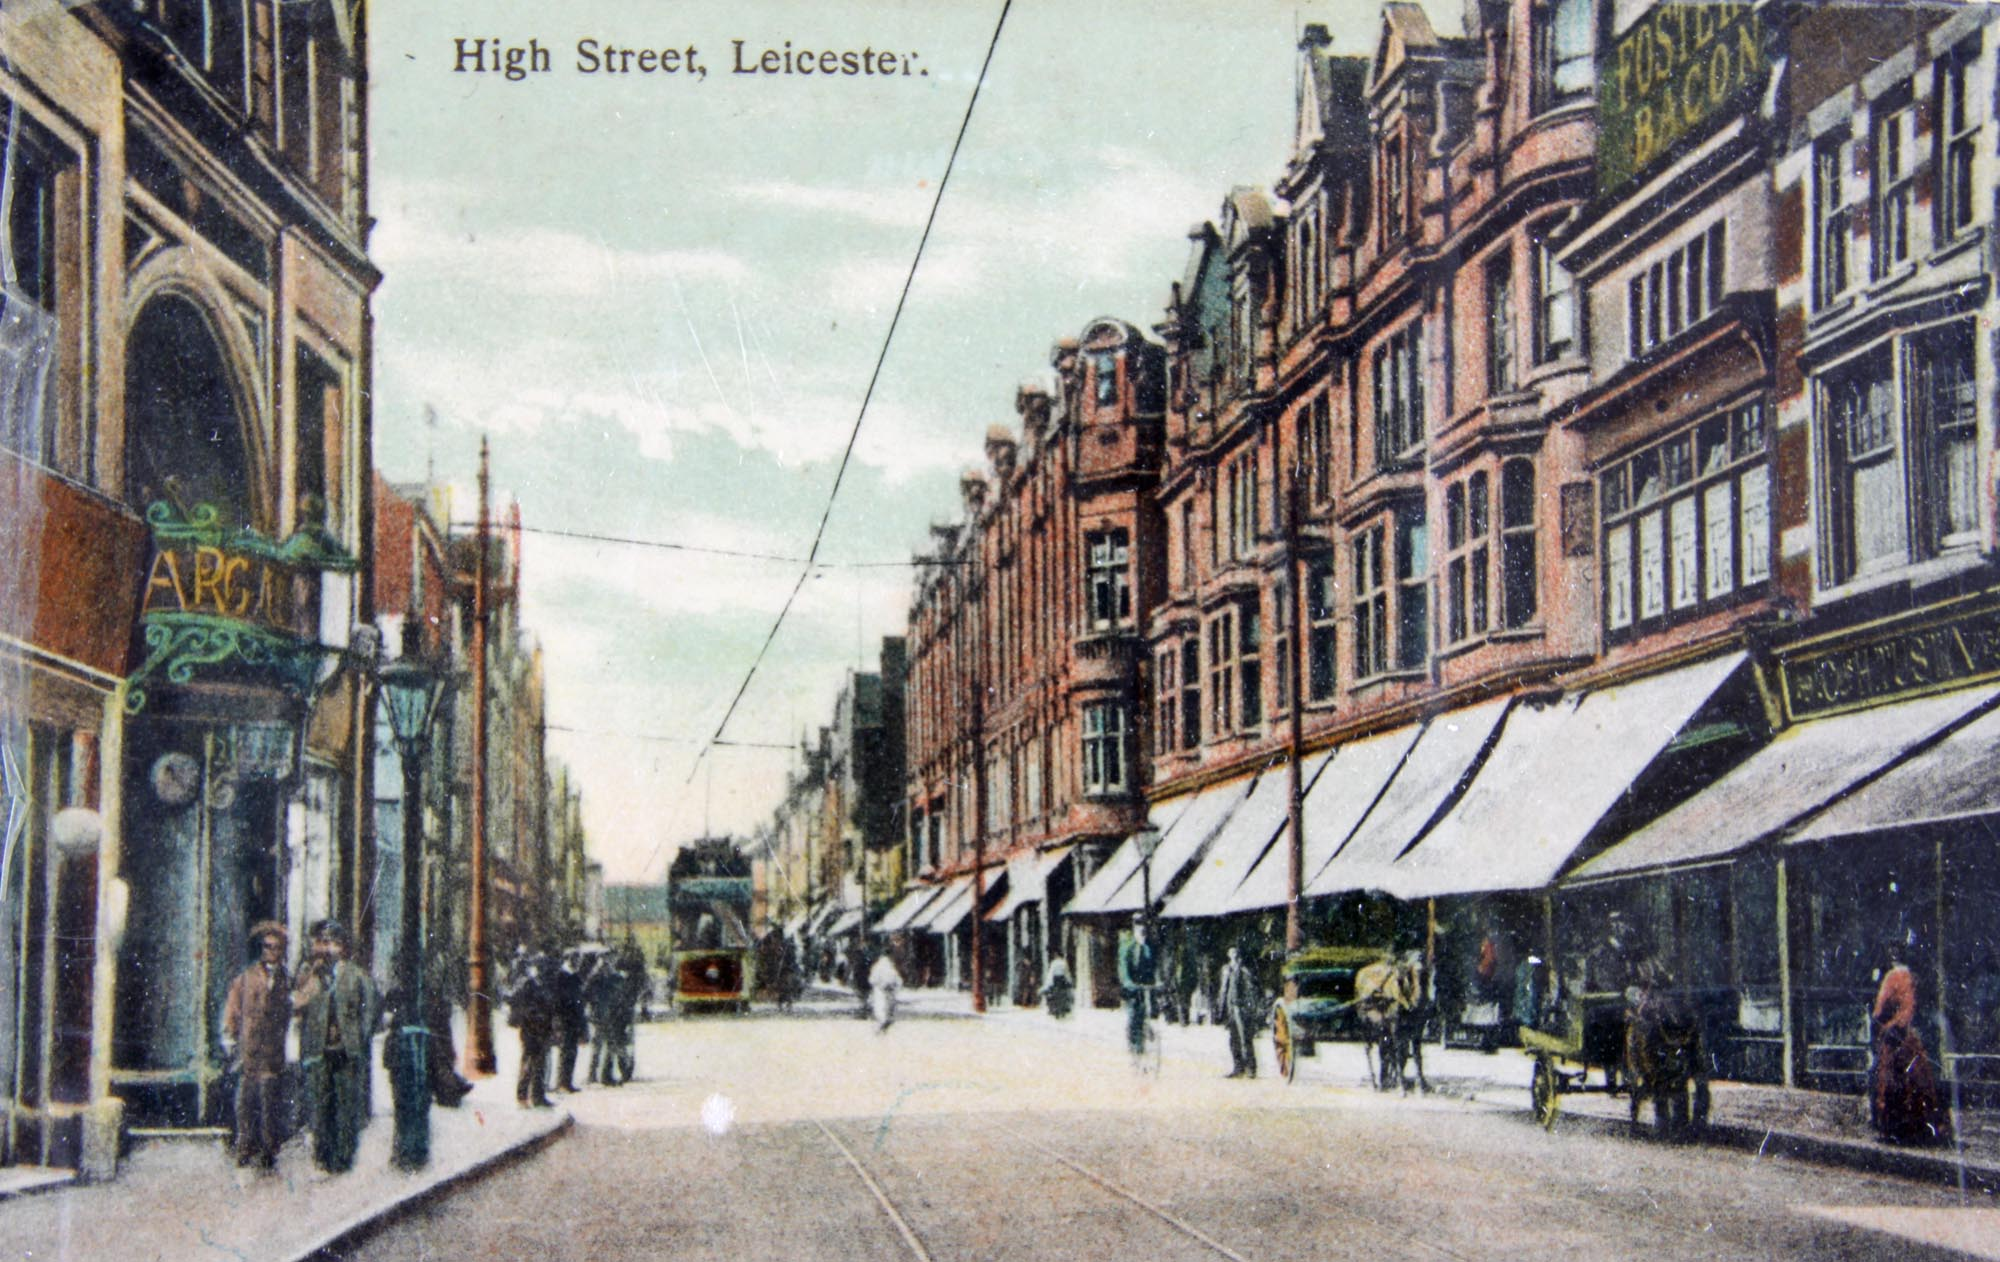 'High Street, Leicester' a postcard from around 1910 - Leicestershire Record Office